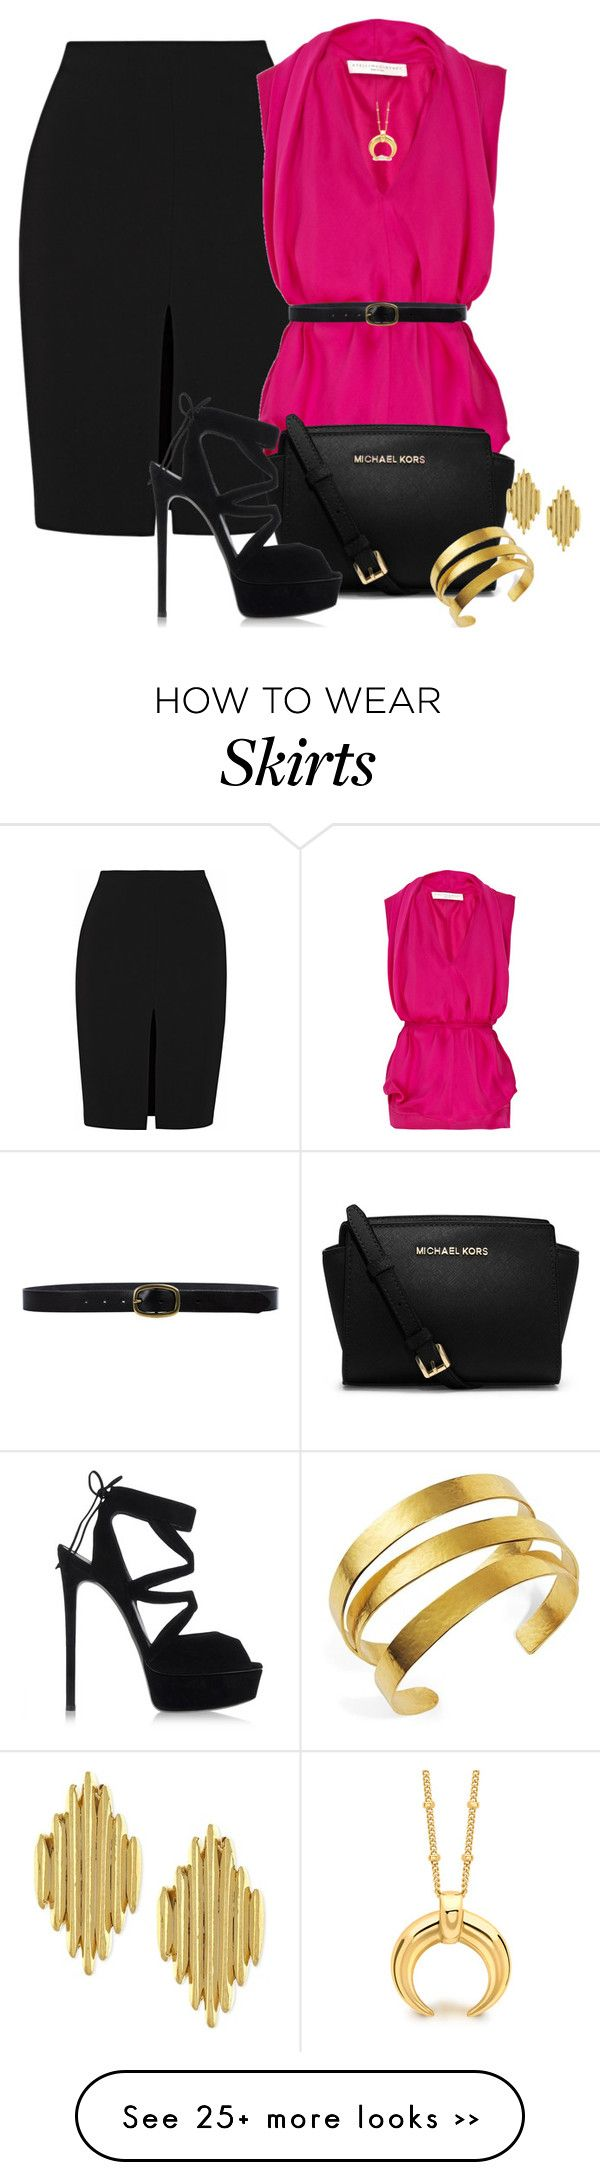 """VERSACE SKIRT"" by arjanadesign on Polyvore"